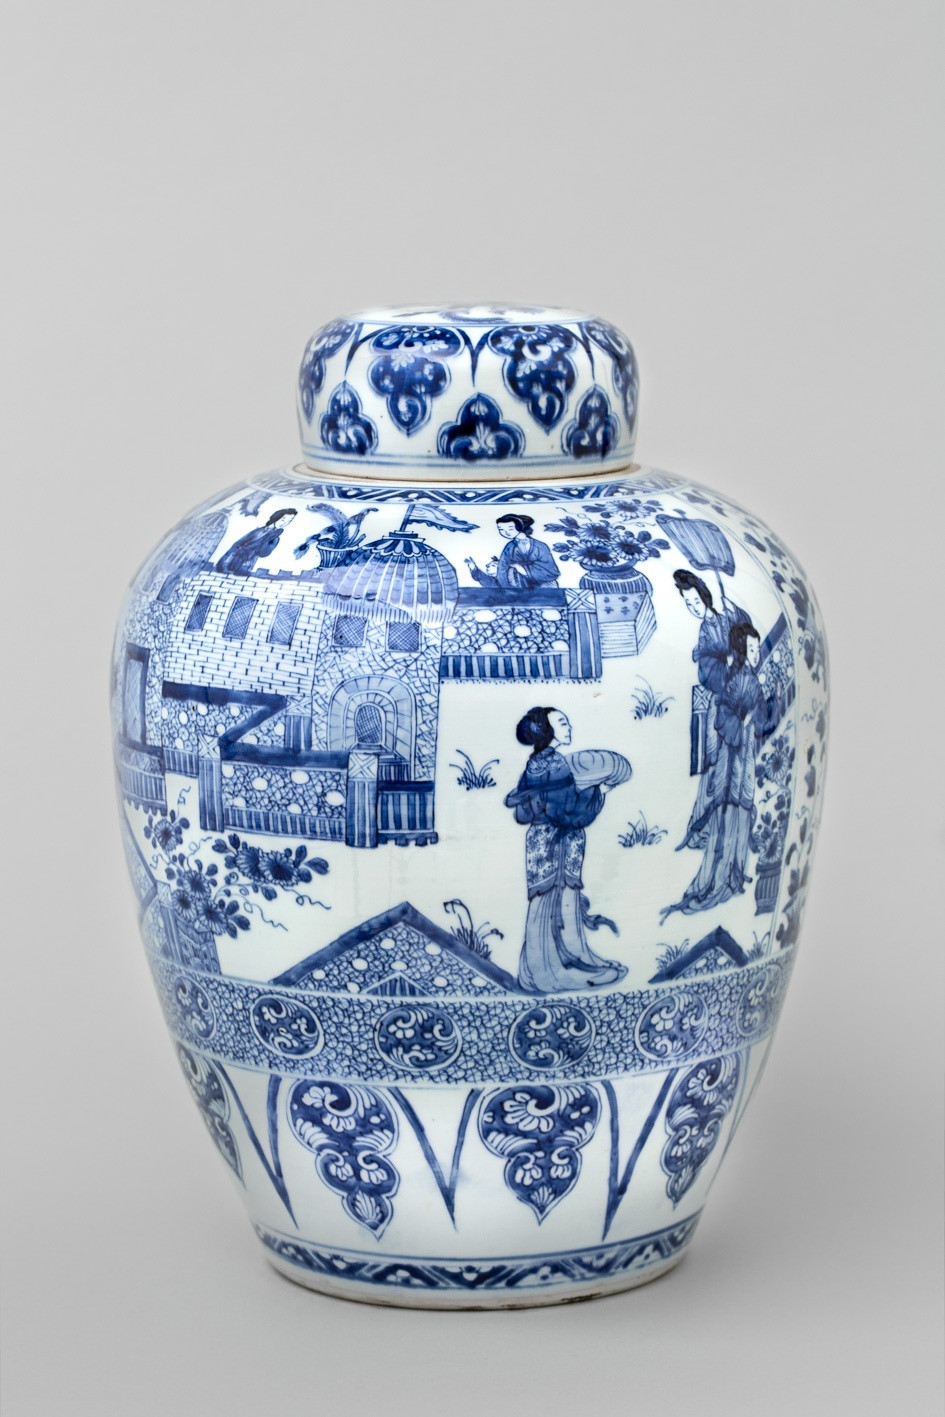 22 Best Large Blue and White Chinese Vases